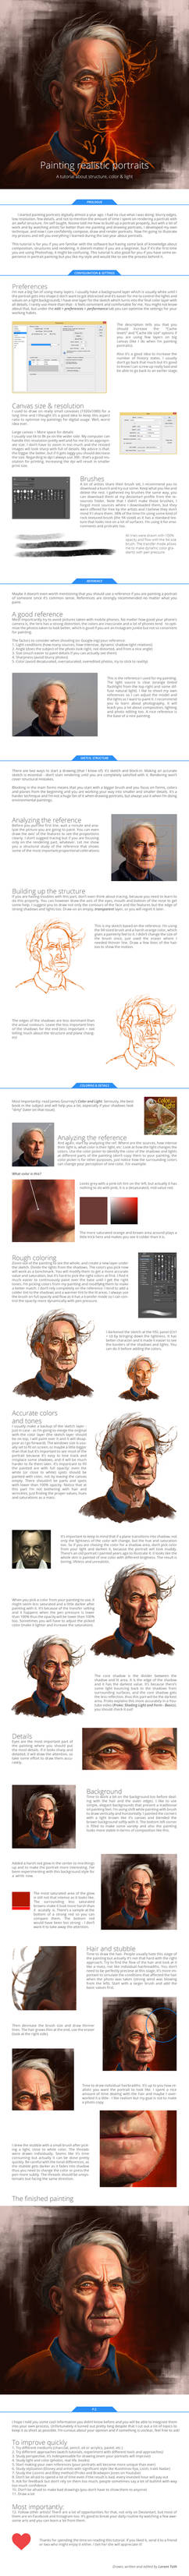 Painting realistic portraits - TUTORIAL